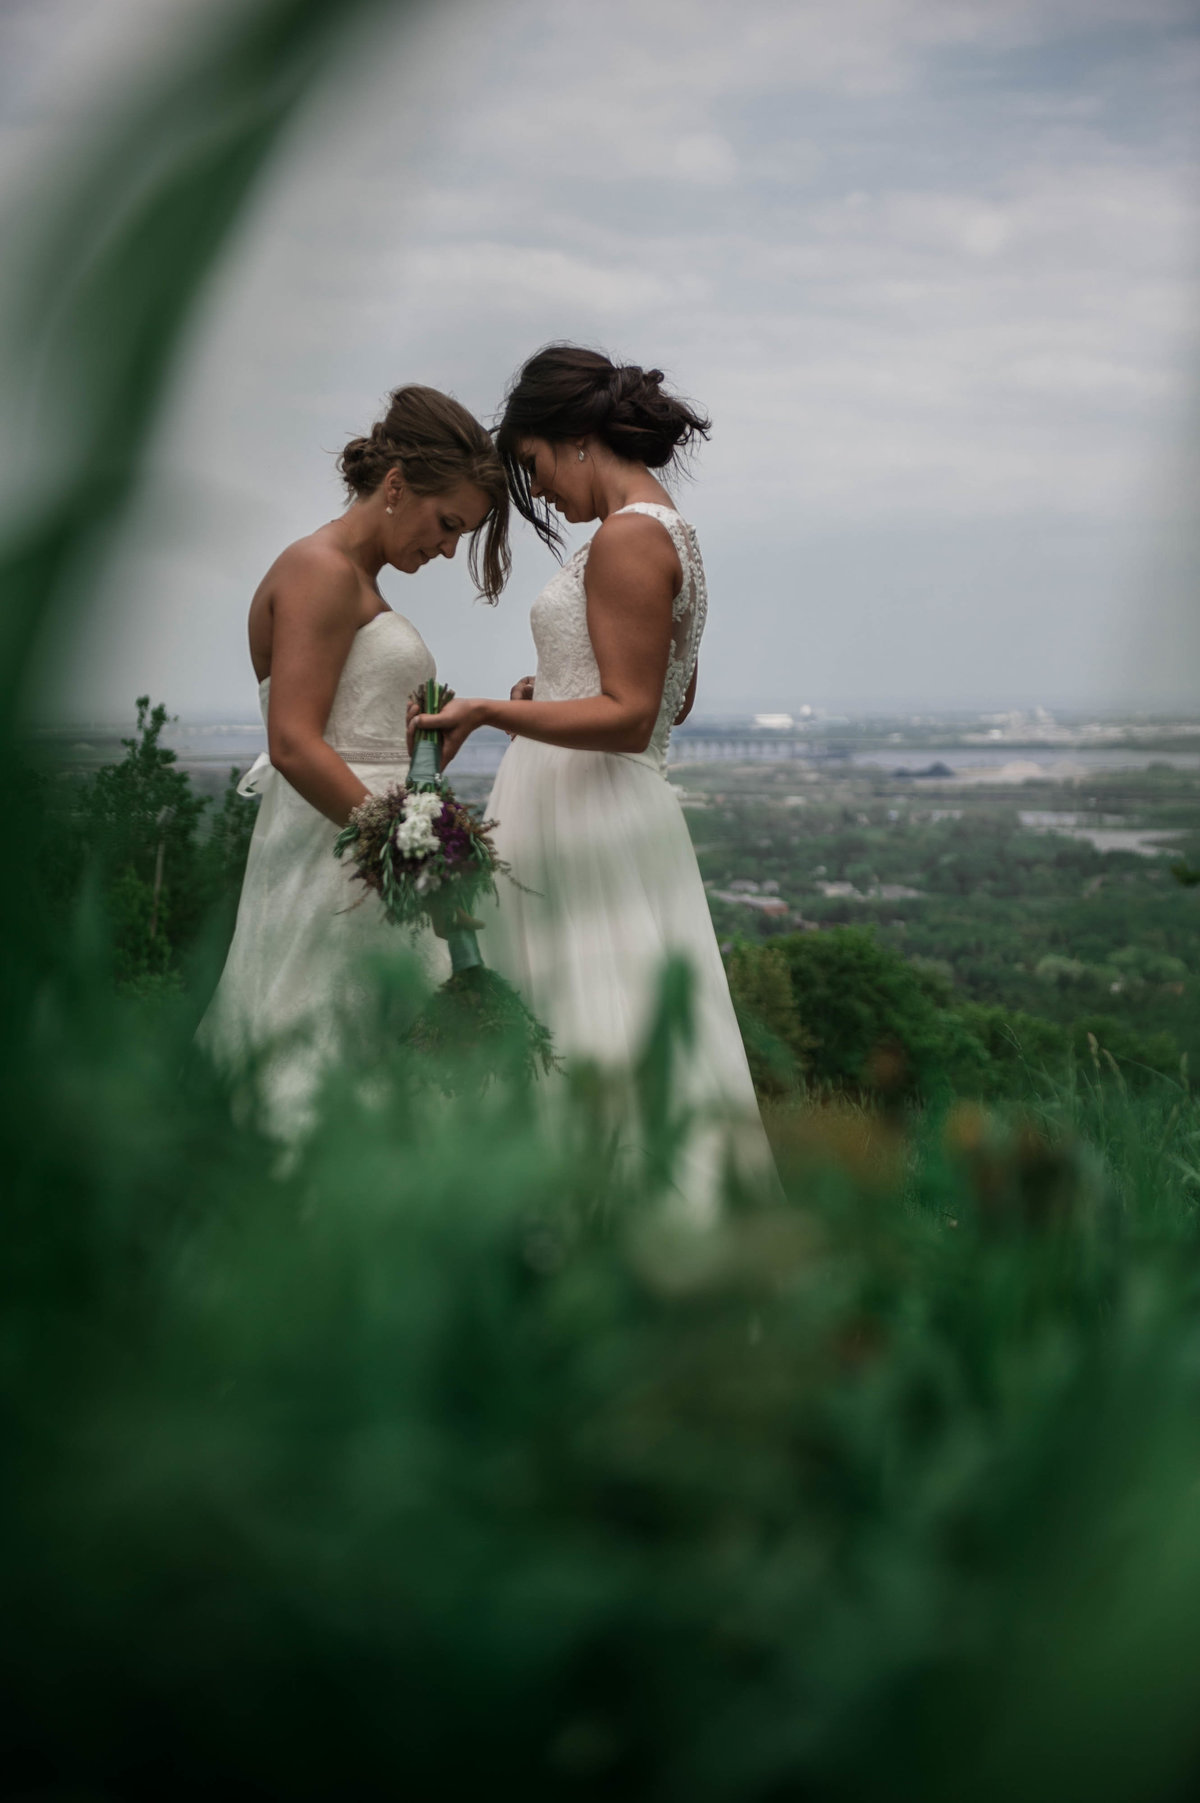 Britini & Paige - Minnesota LGBT Wedding Photography - RKH Images - Portraits  (91 of 338)